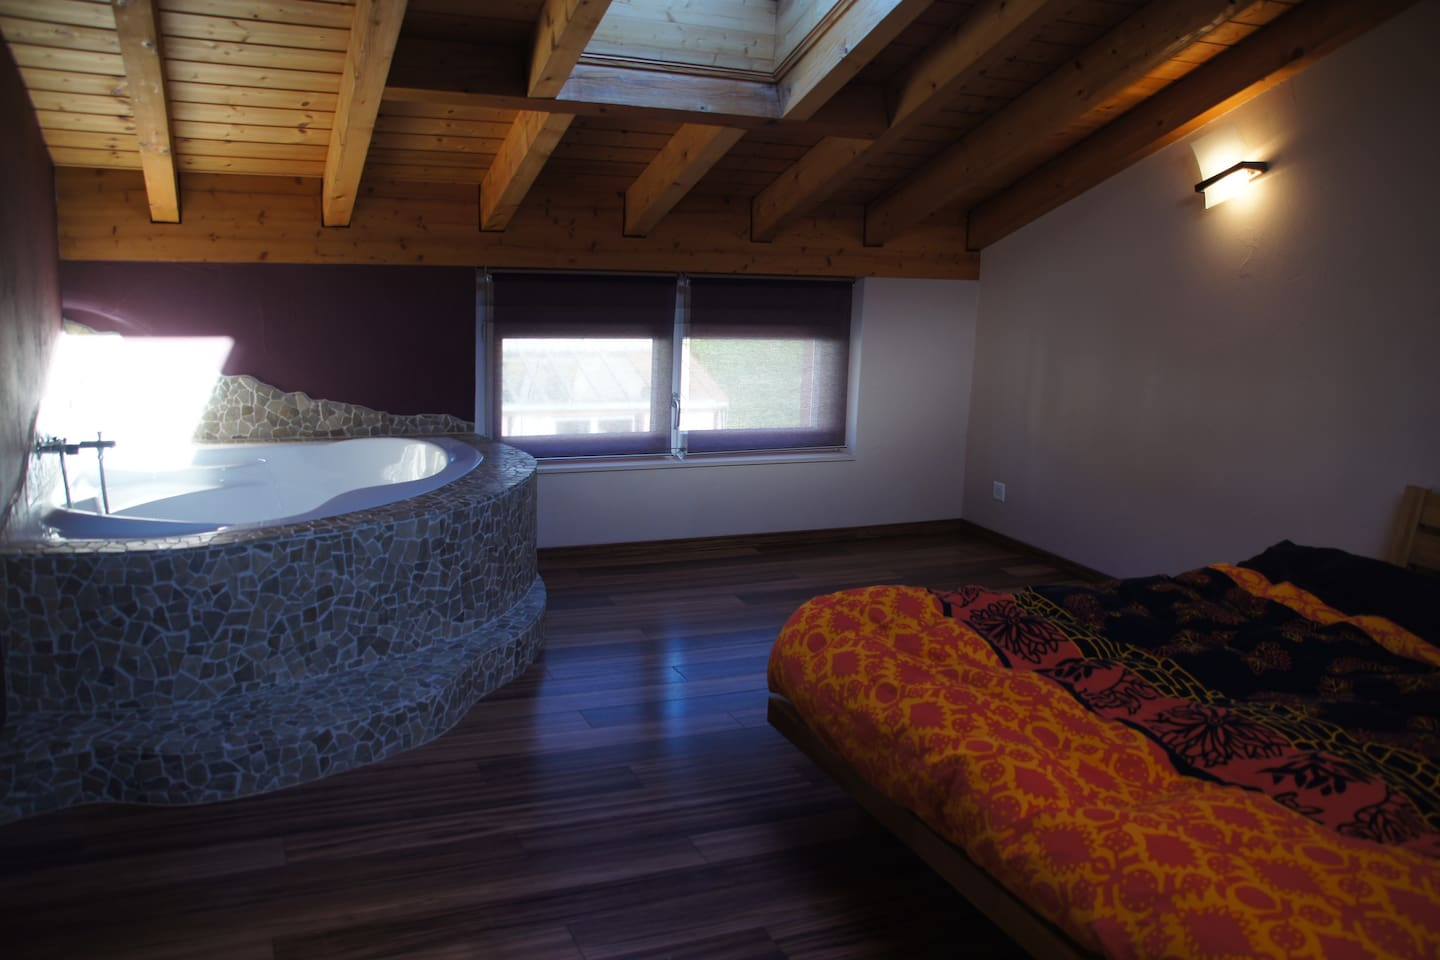 The large bedroom under the roof with bathtub and TV